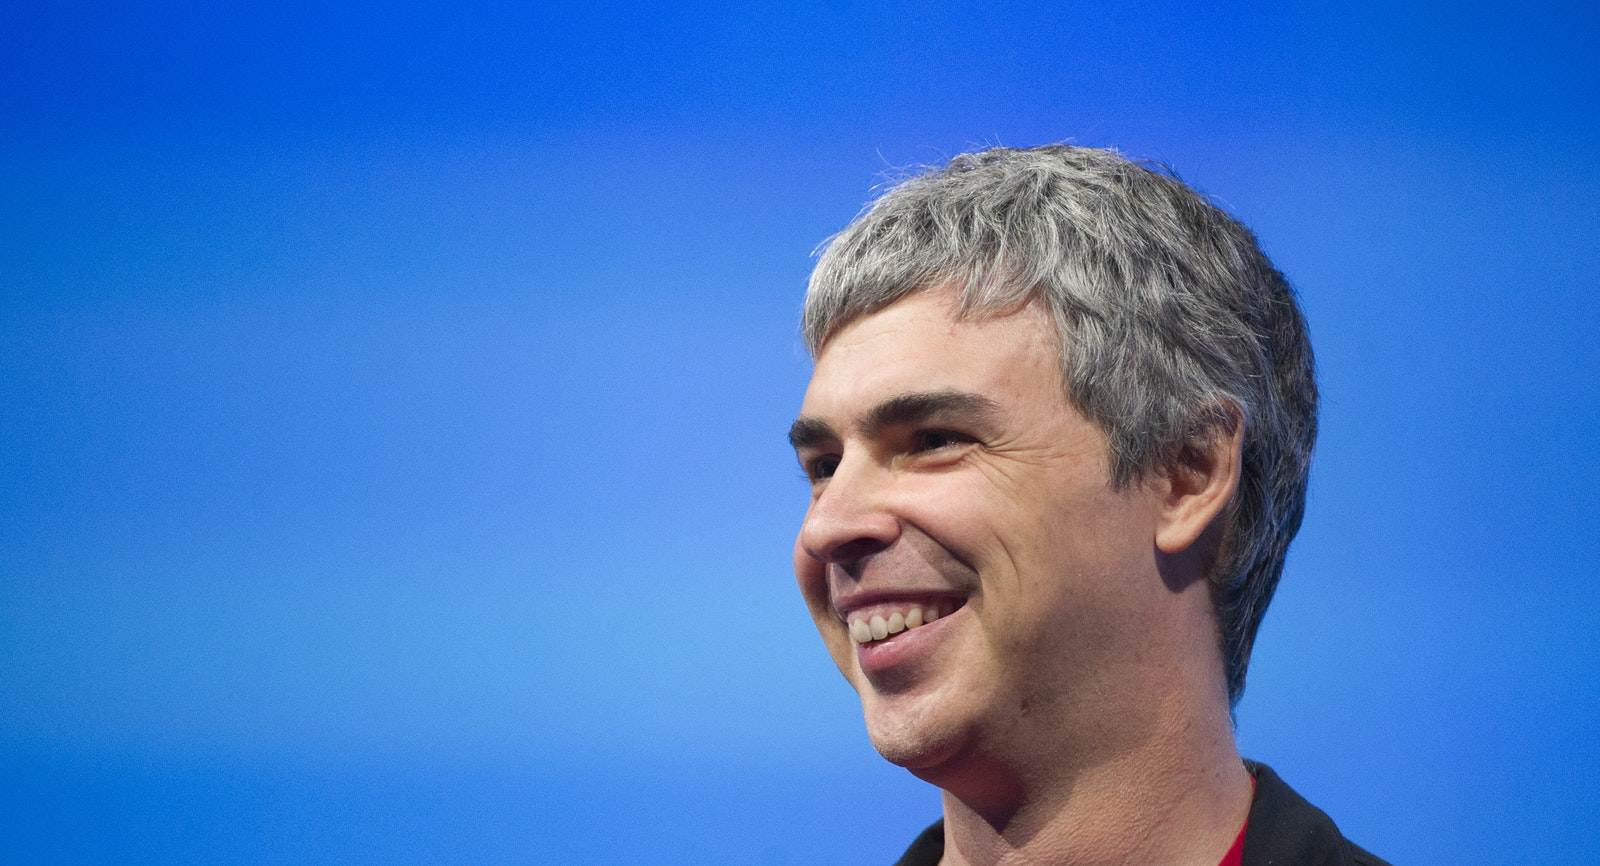 Google CEO Larry Page. Photo by Bloomberg.